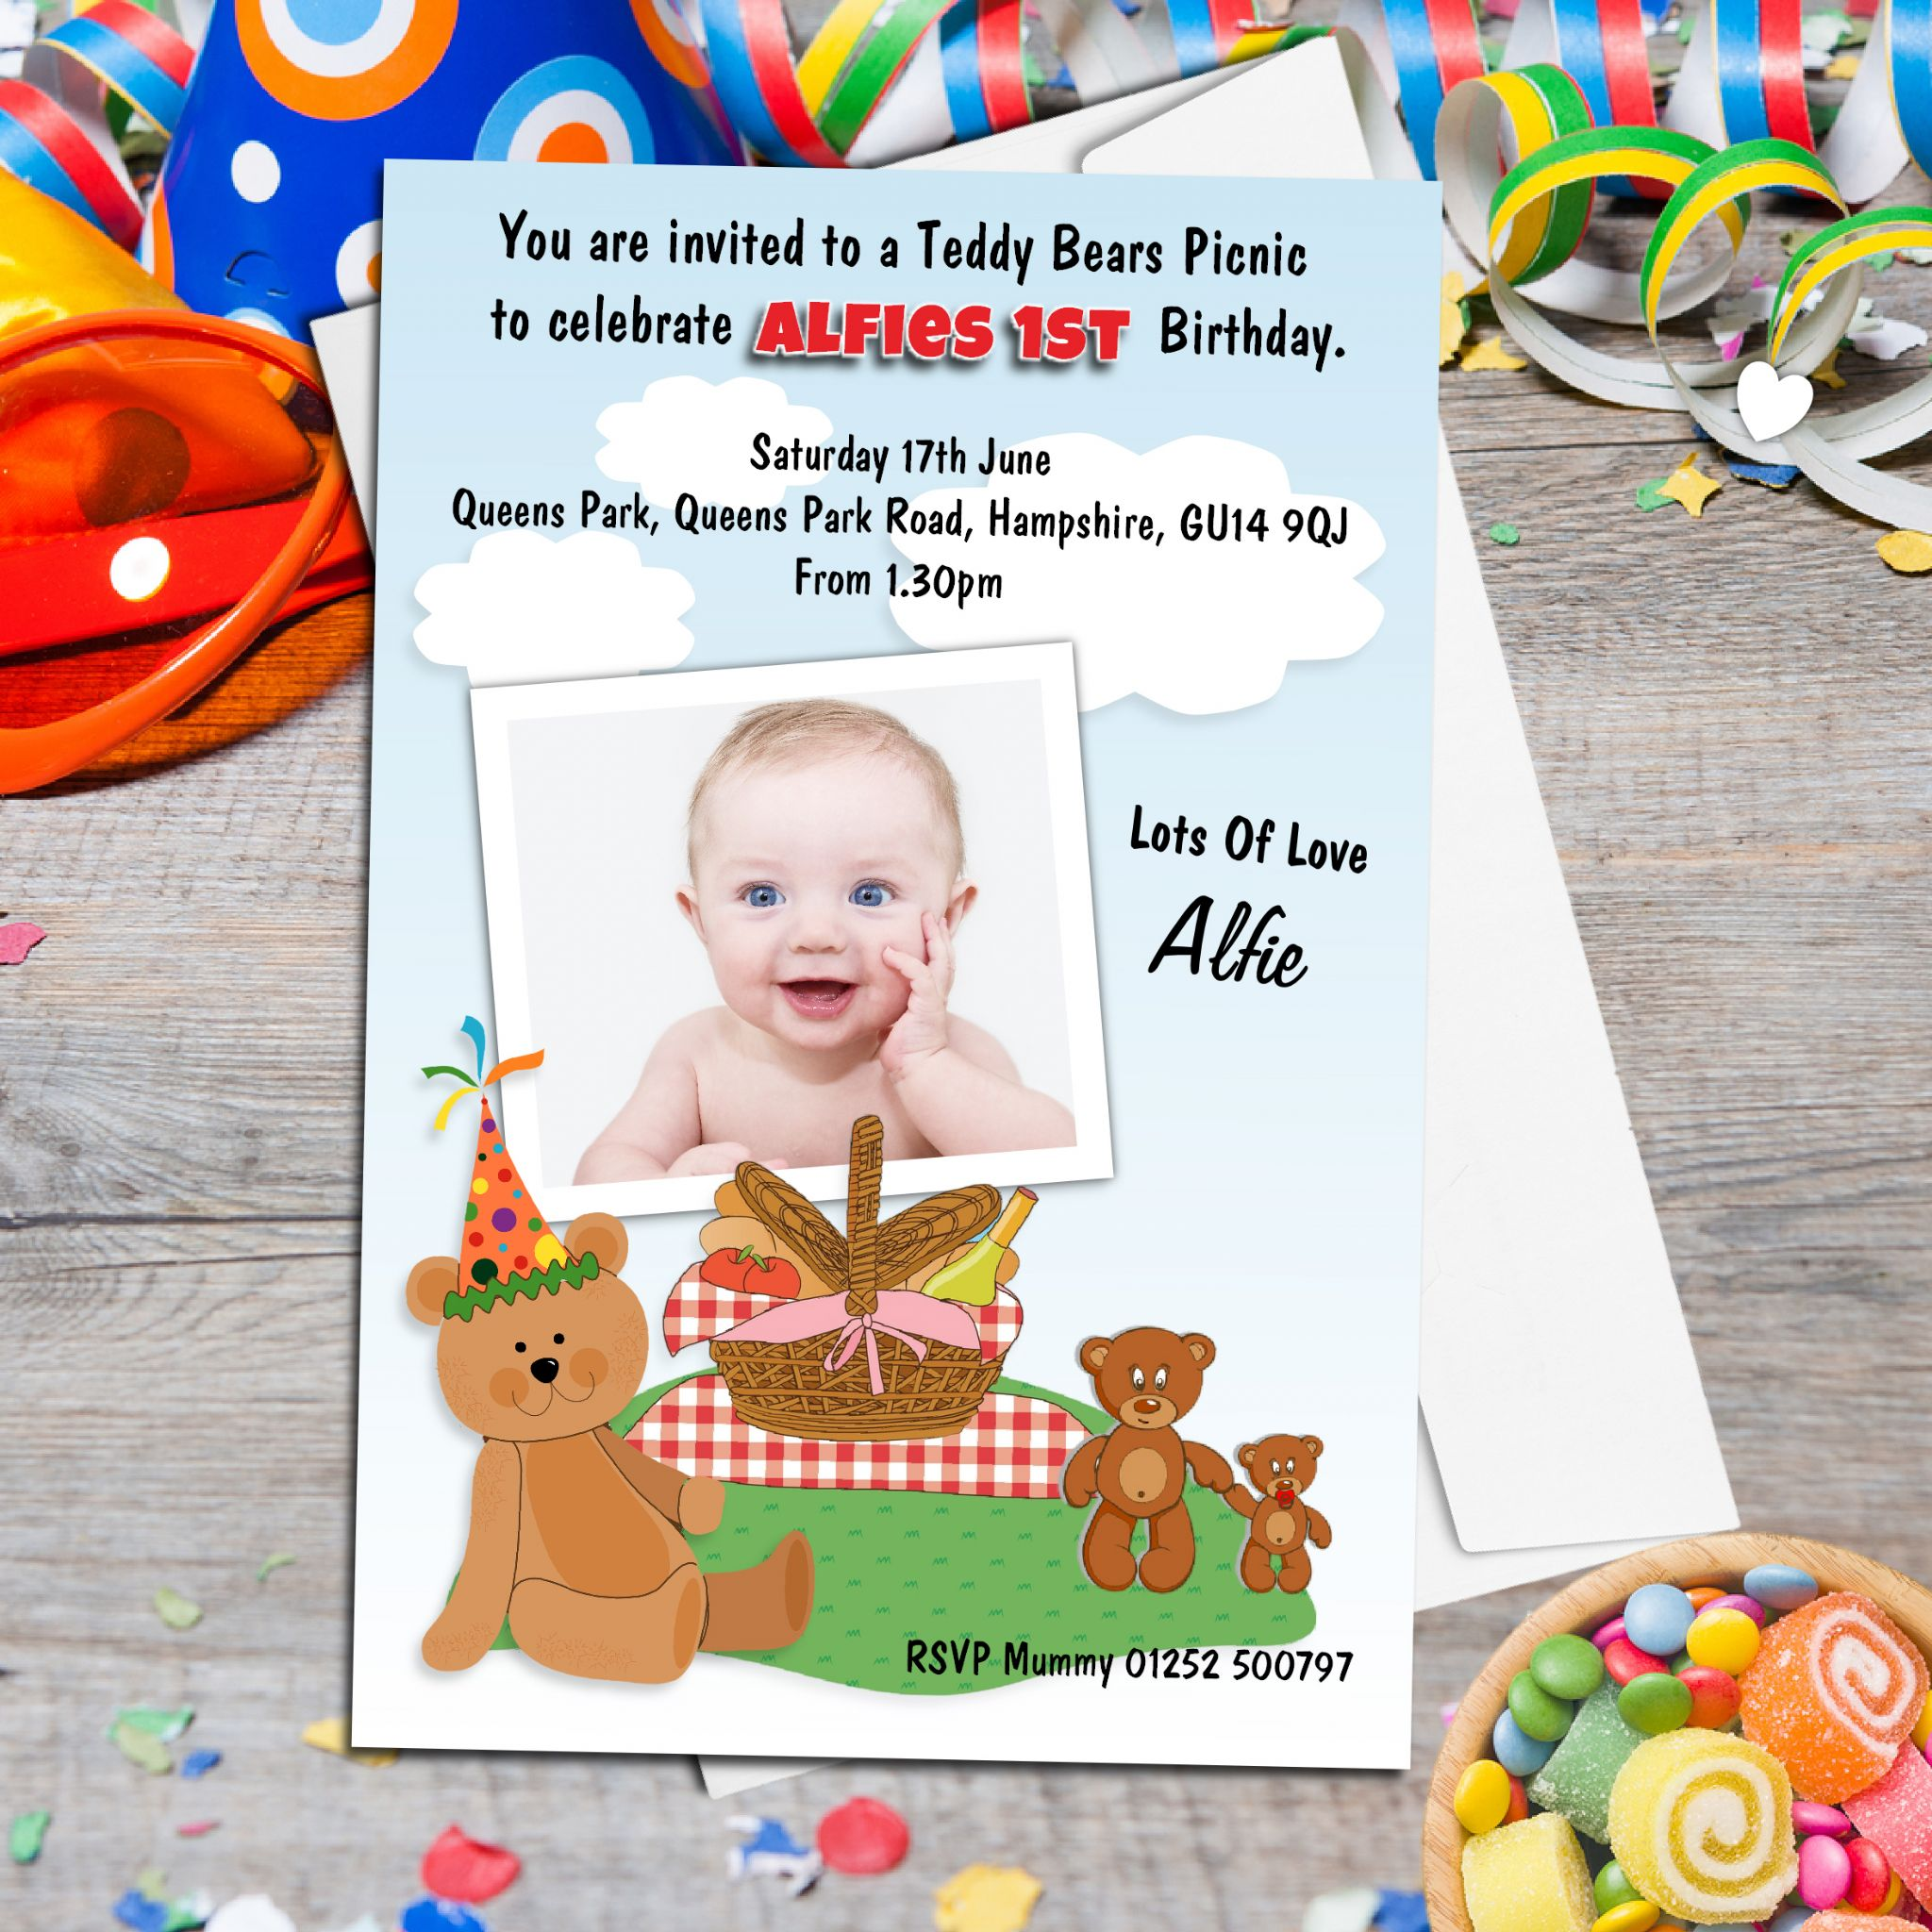 10 Personalised Teddy Bears Picnic Birthday Party PHOTO – Teddy Bears Picnic Party Invitations